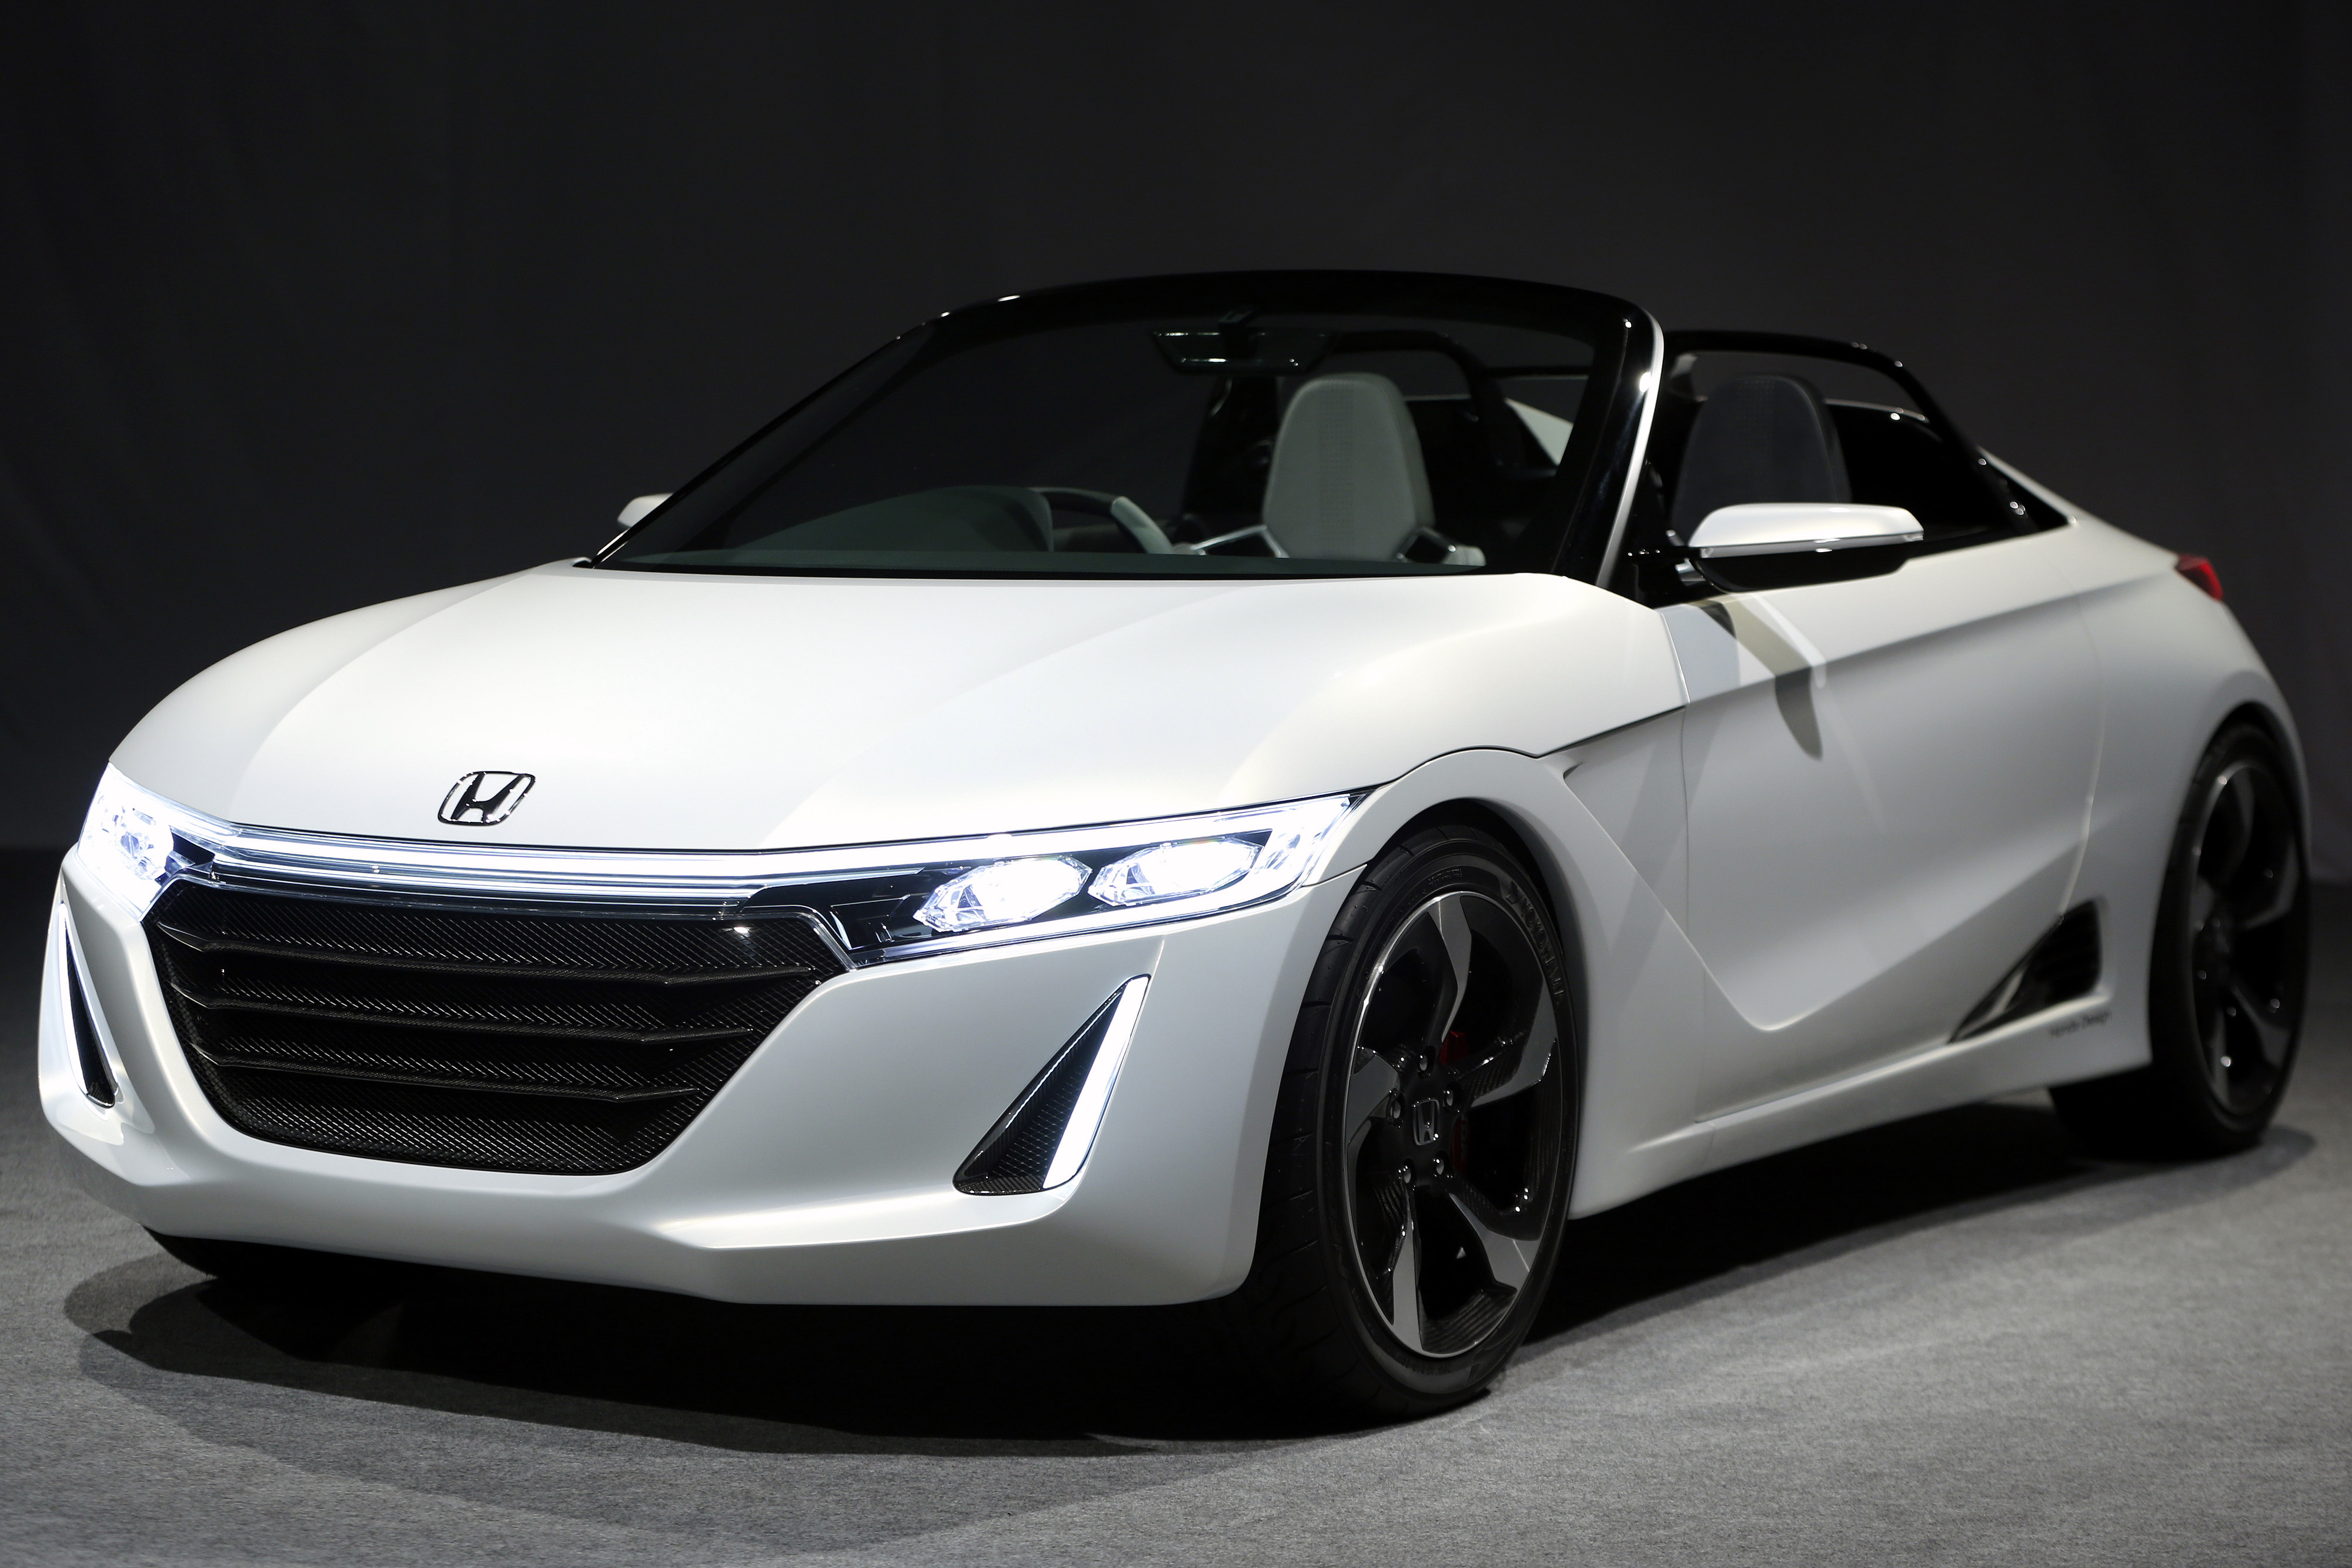 Honda S660 Modified >> Honda S660 Gets Over-The-Top Treatment From Liberty Walk